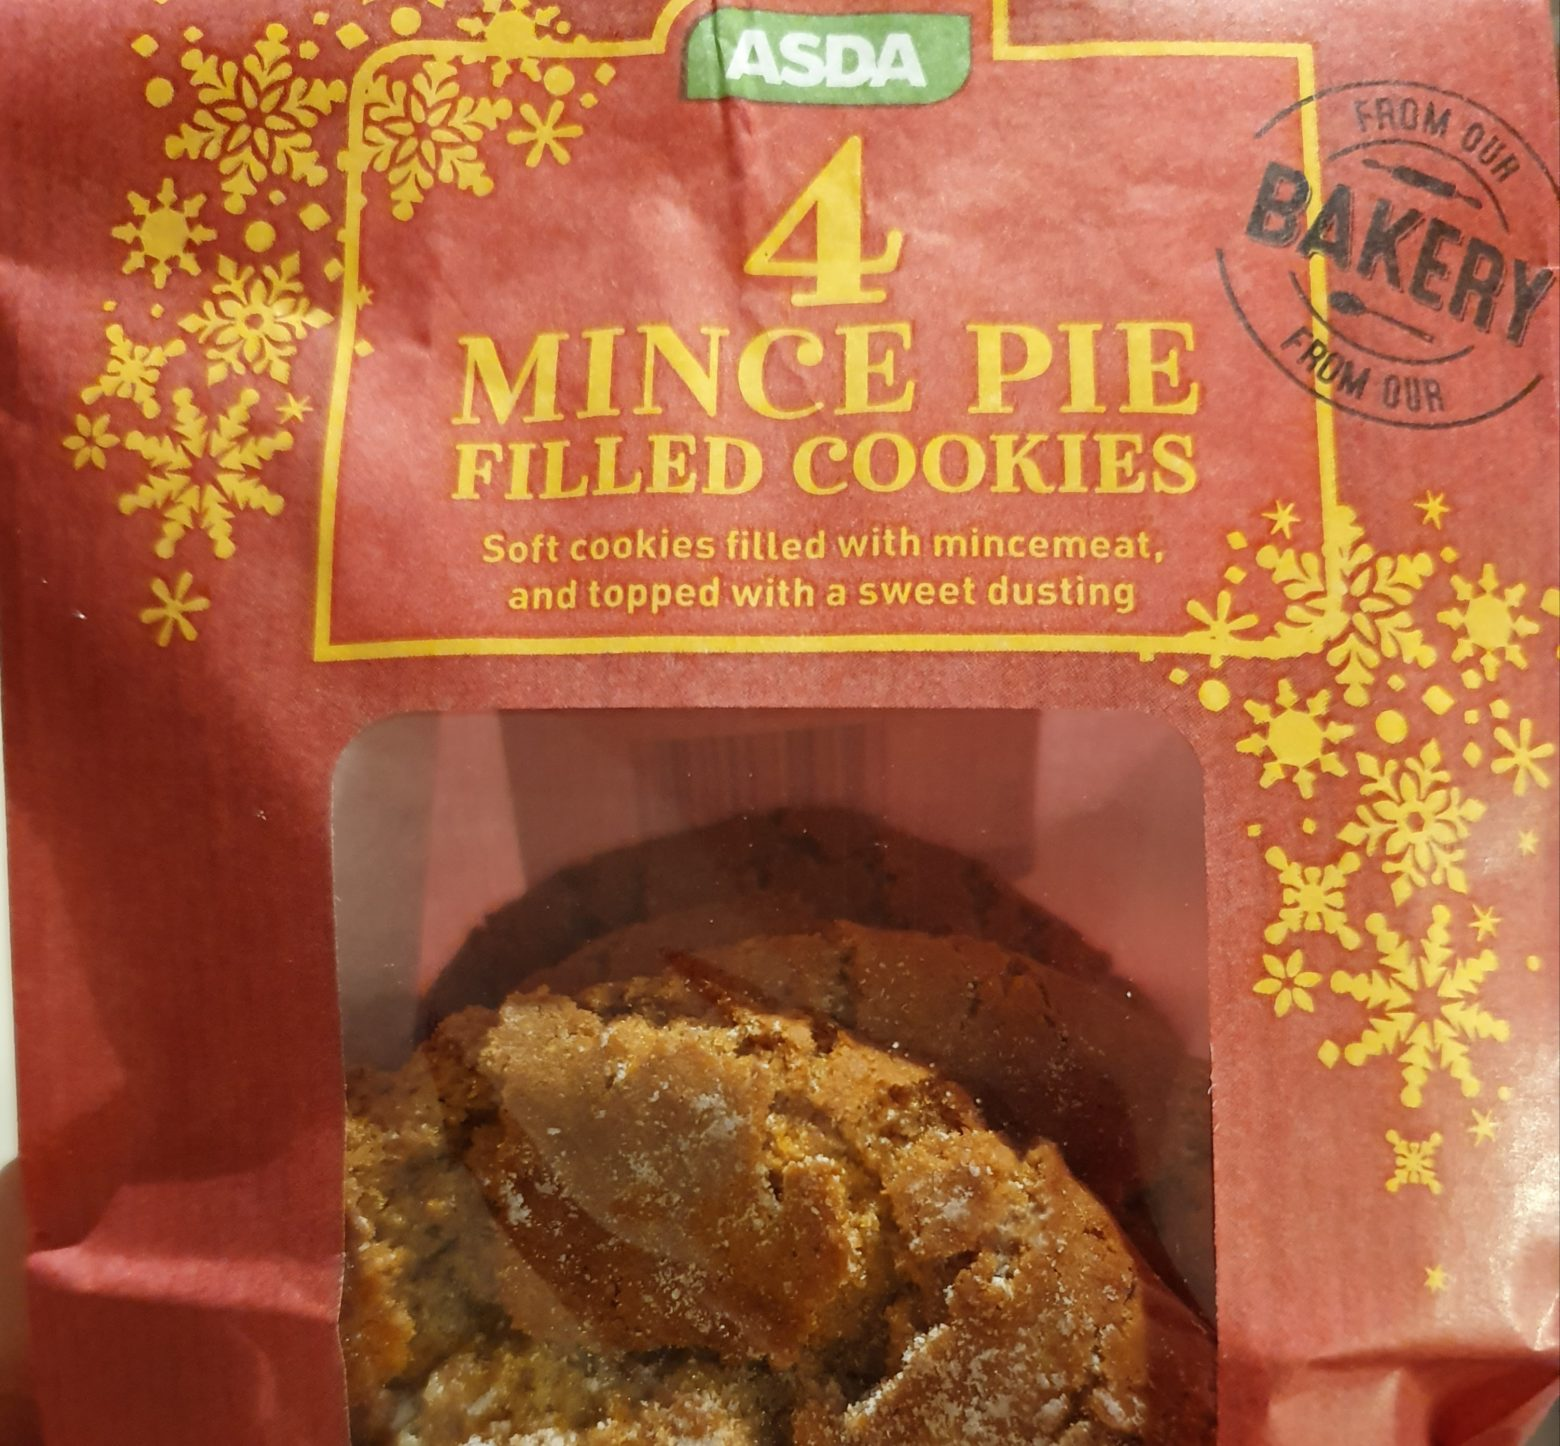 ASDA Mince Pie Filled Cookie Review 2019